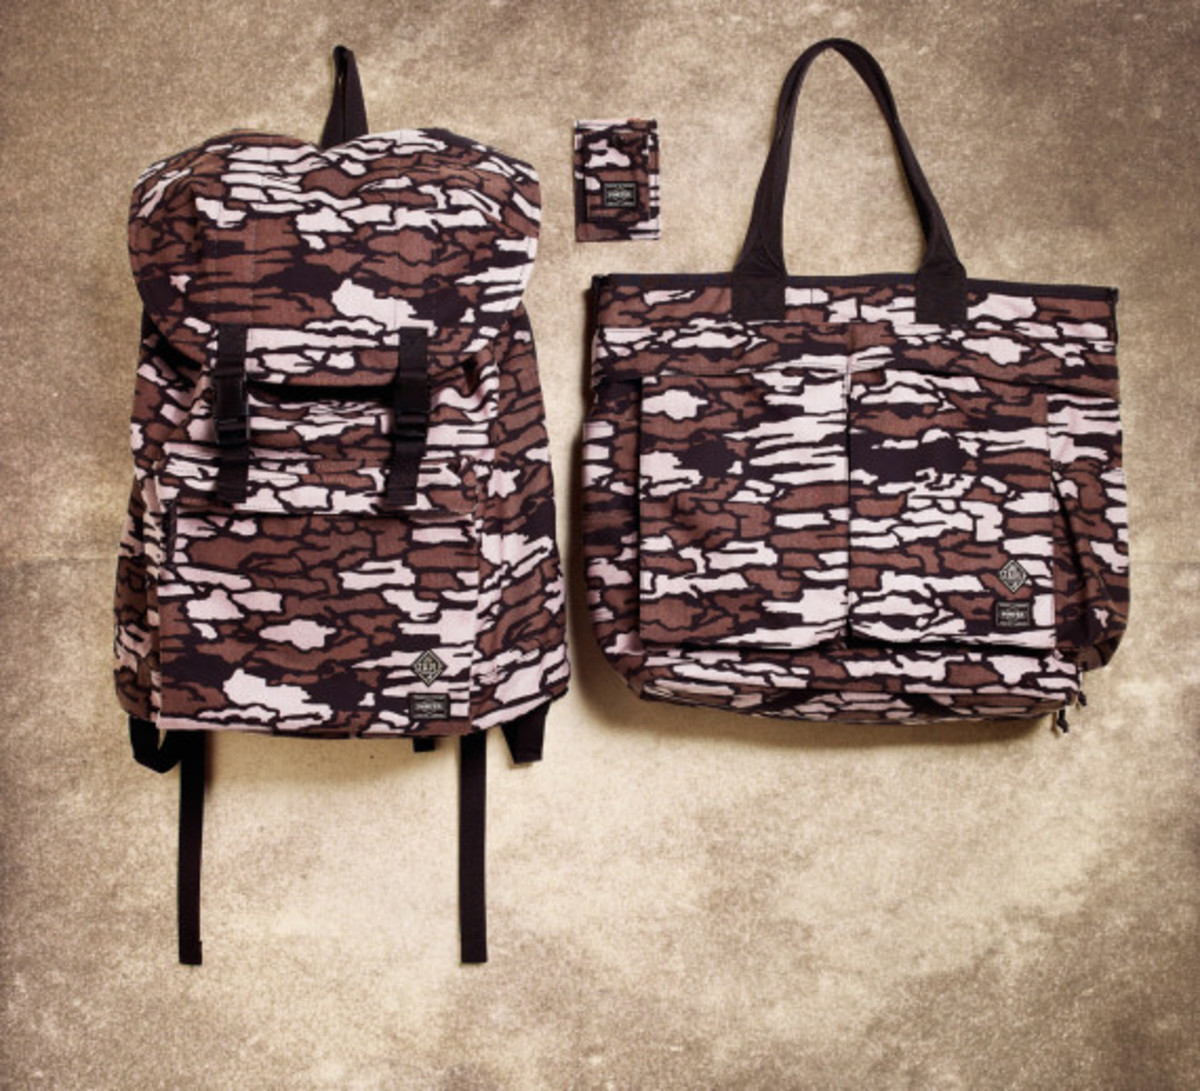 staple-x-porter-bags-holiday-2013-accessories-collection-02